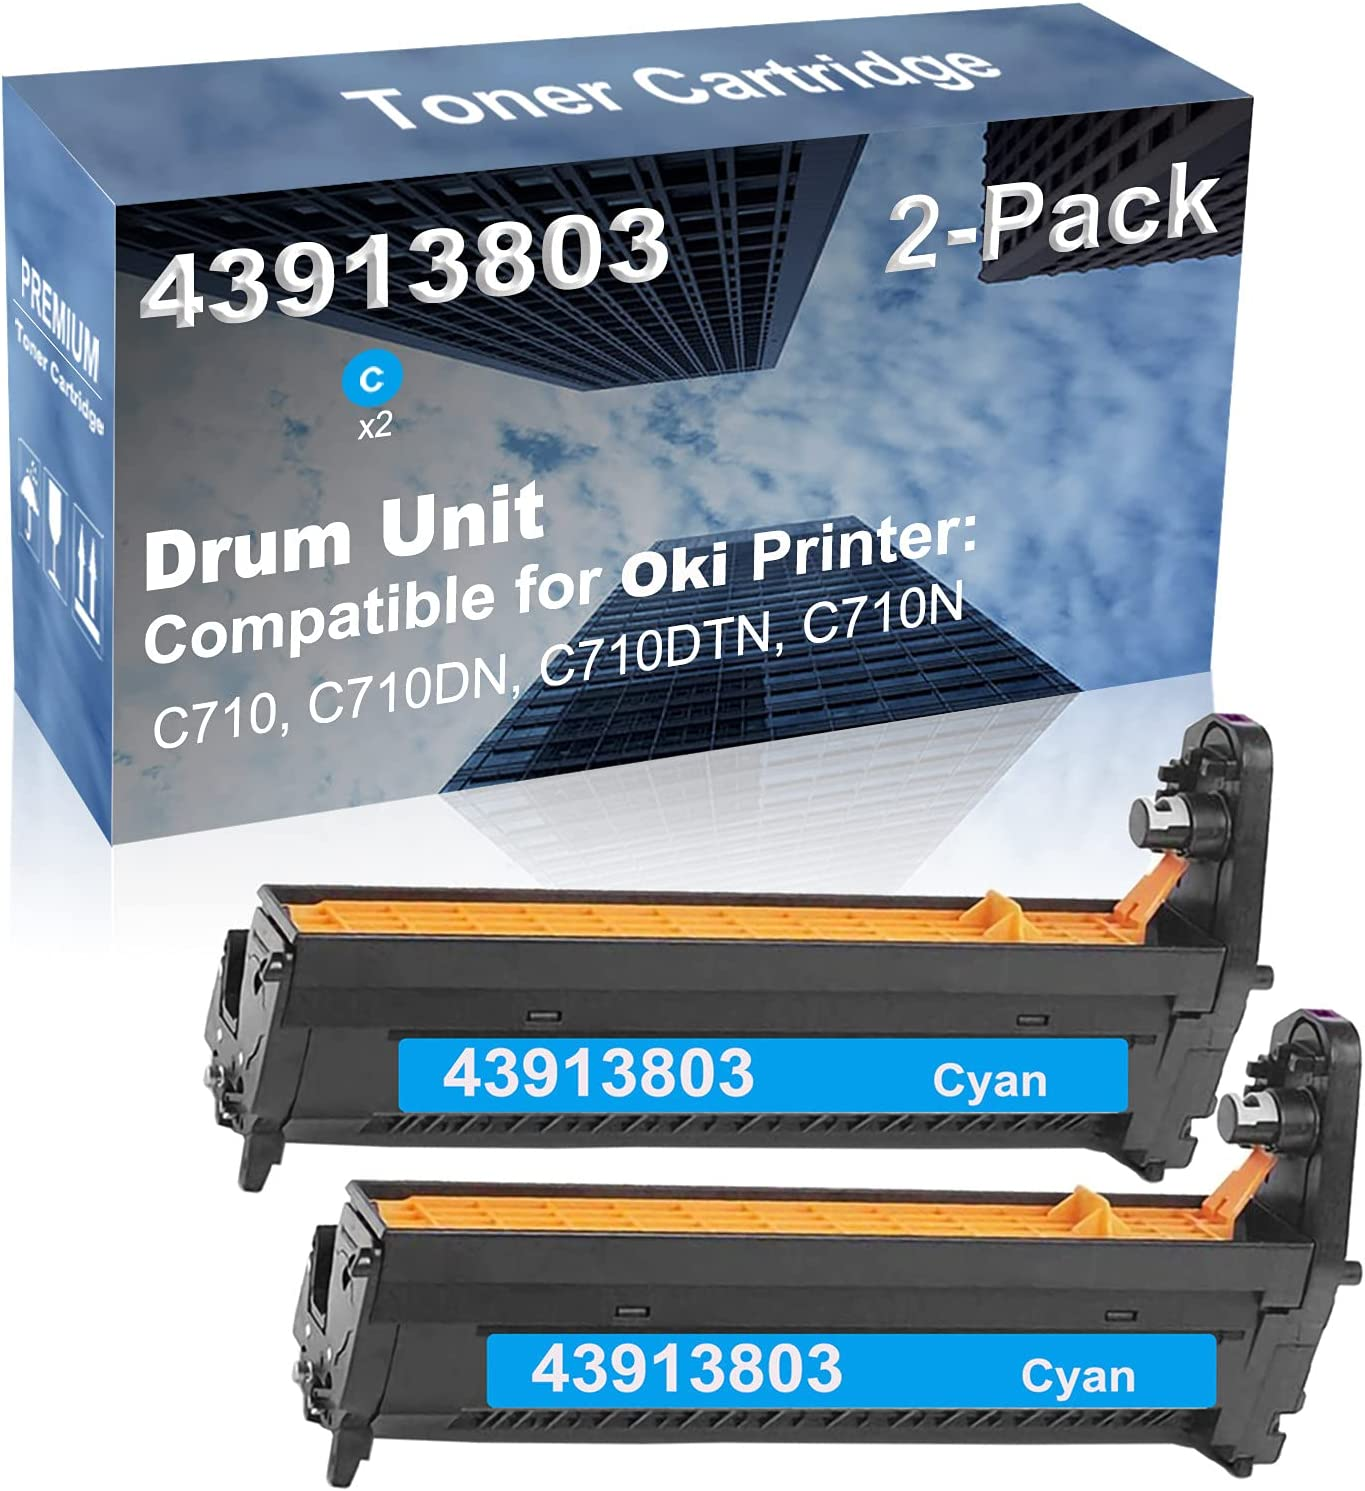 2-Pack (Cyan) Compatible C710, C710DN, C710DTN, C710N Printer Drum Kit High Capacity Replacement for Oki 43913803 Drum Unit